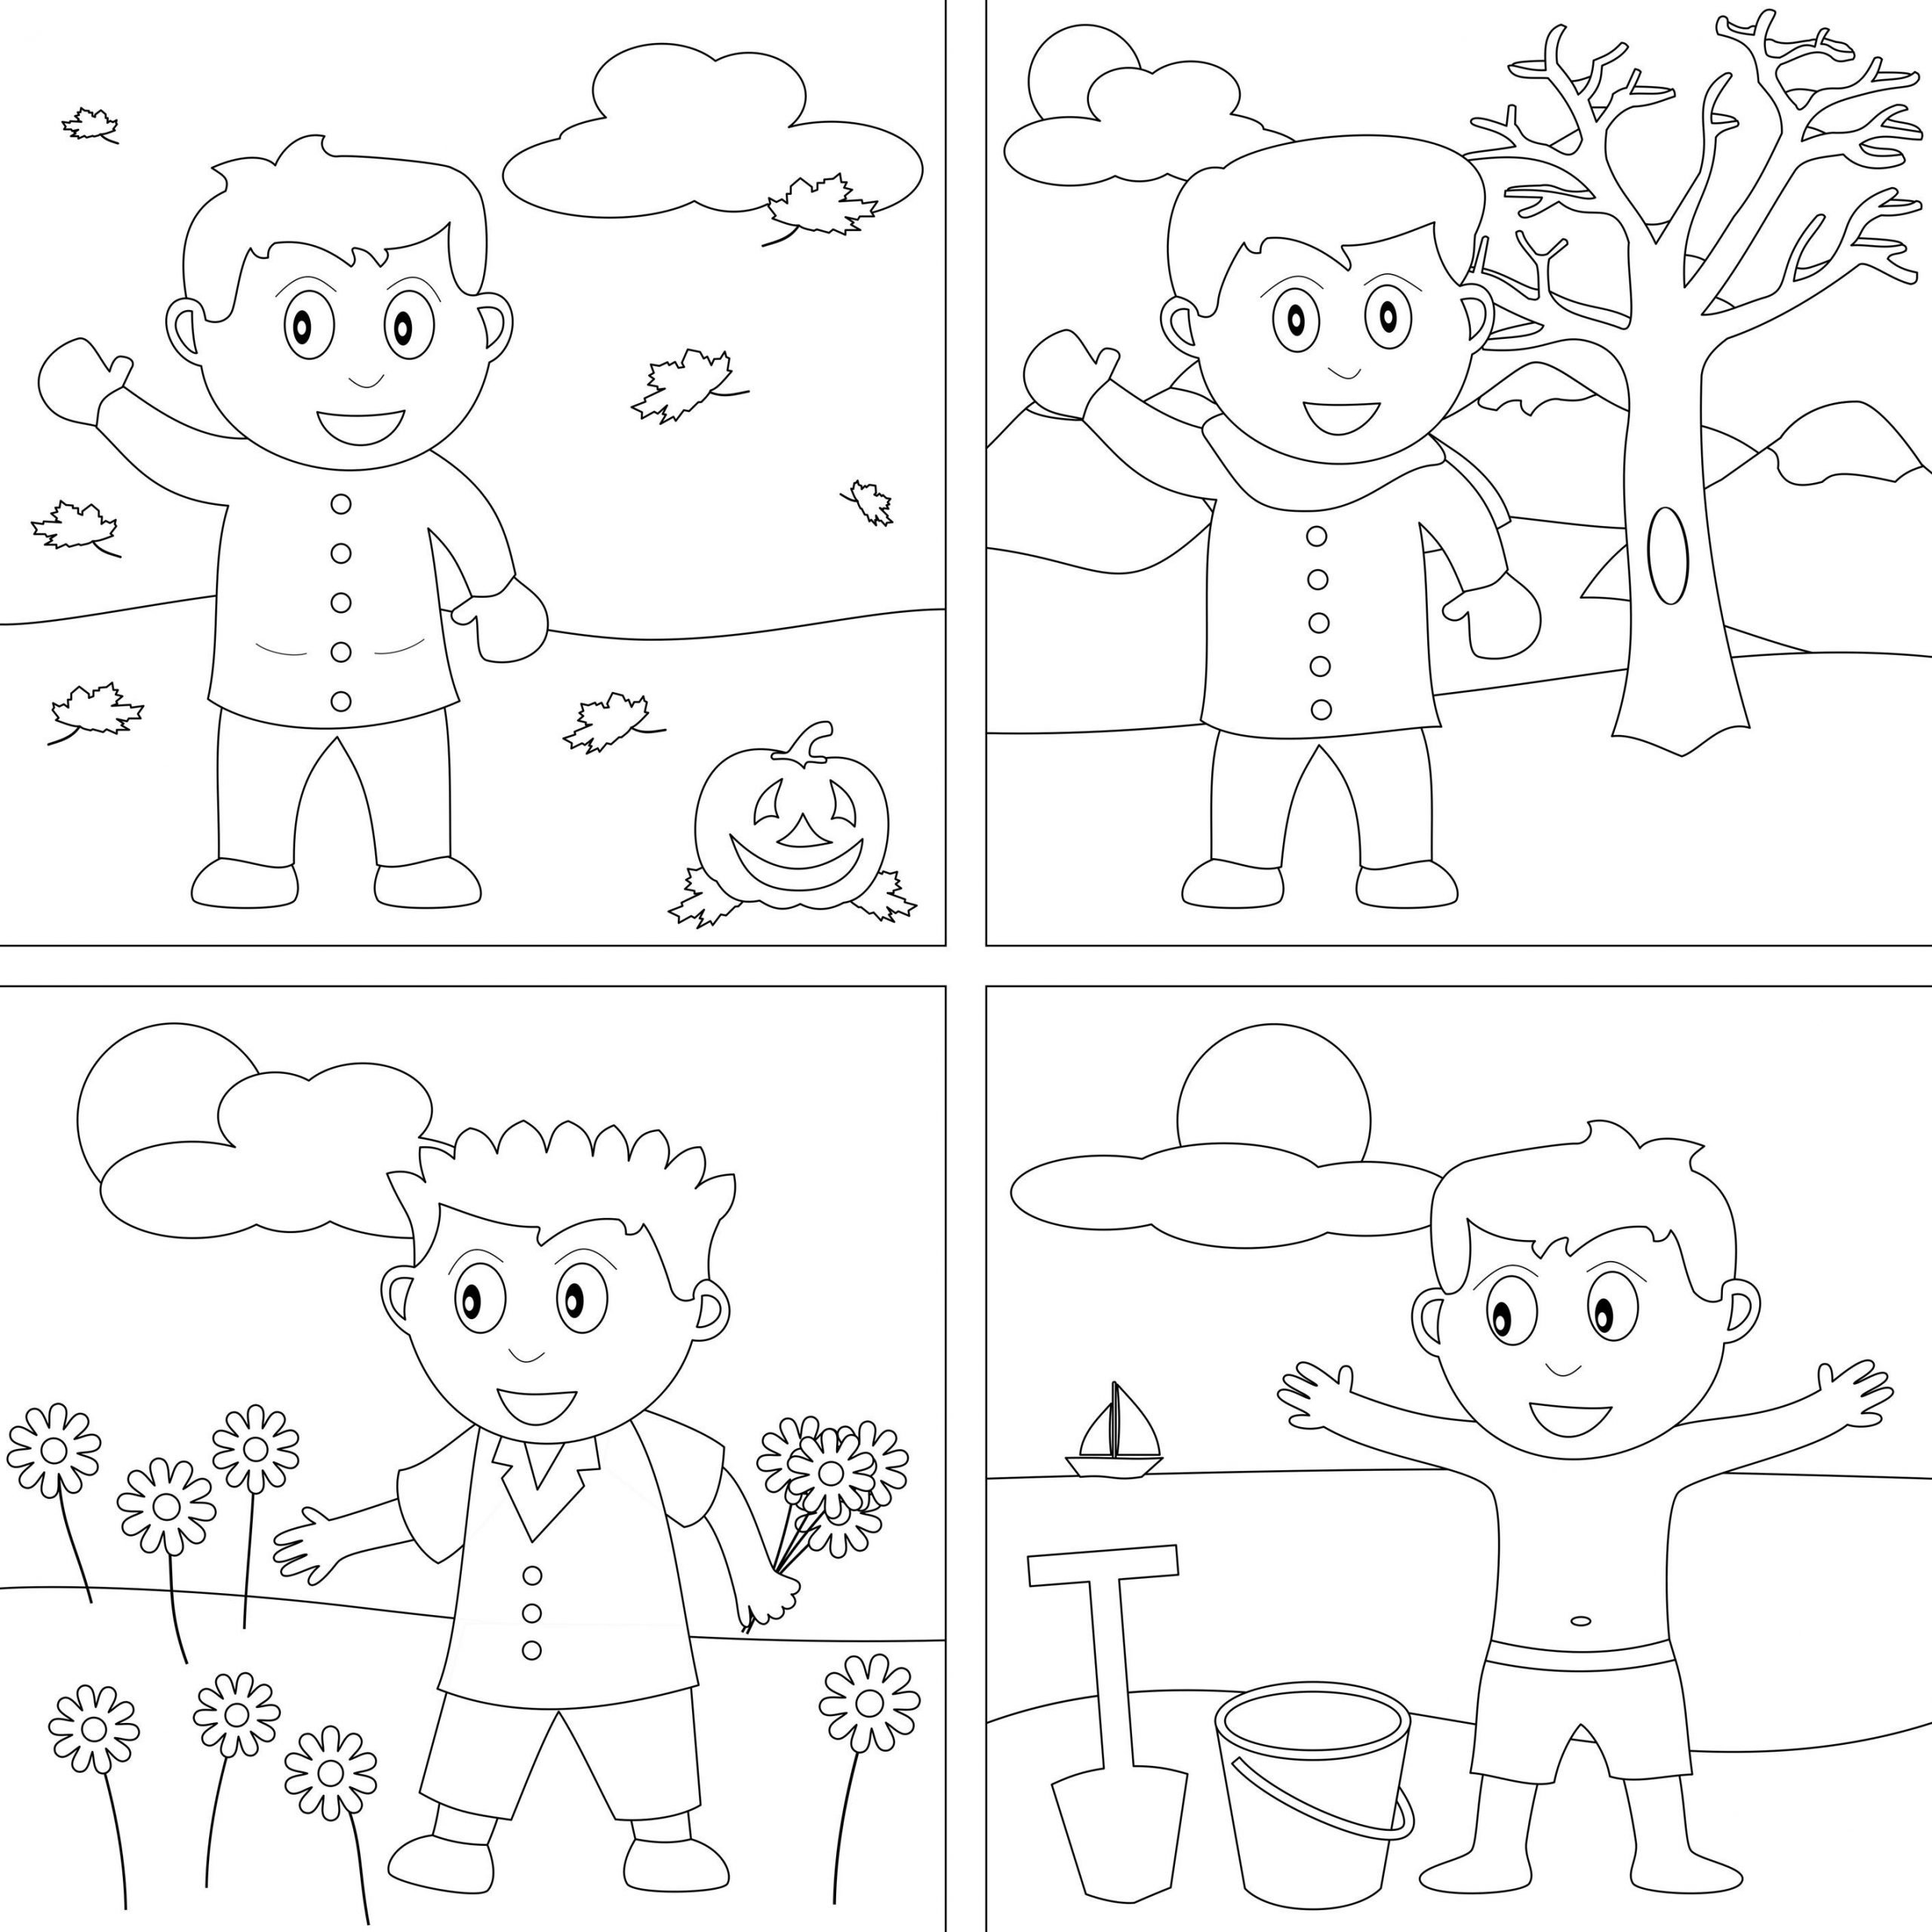 Seasons Worksheets for Kindergarten 4 Seasons Coloring Pages